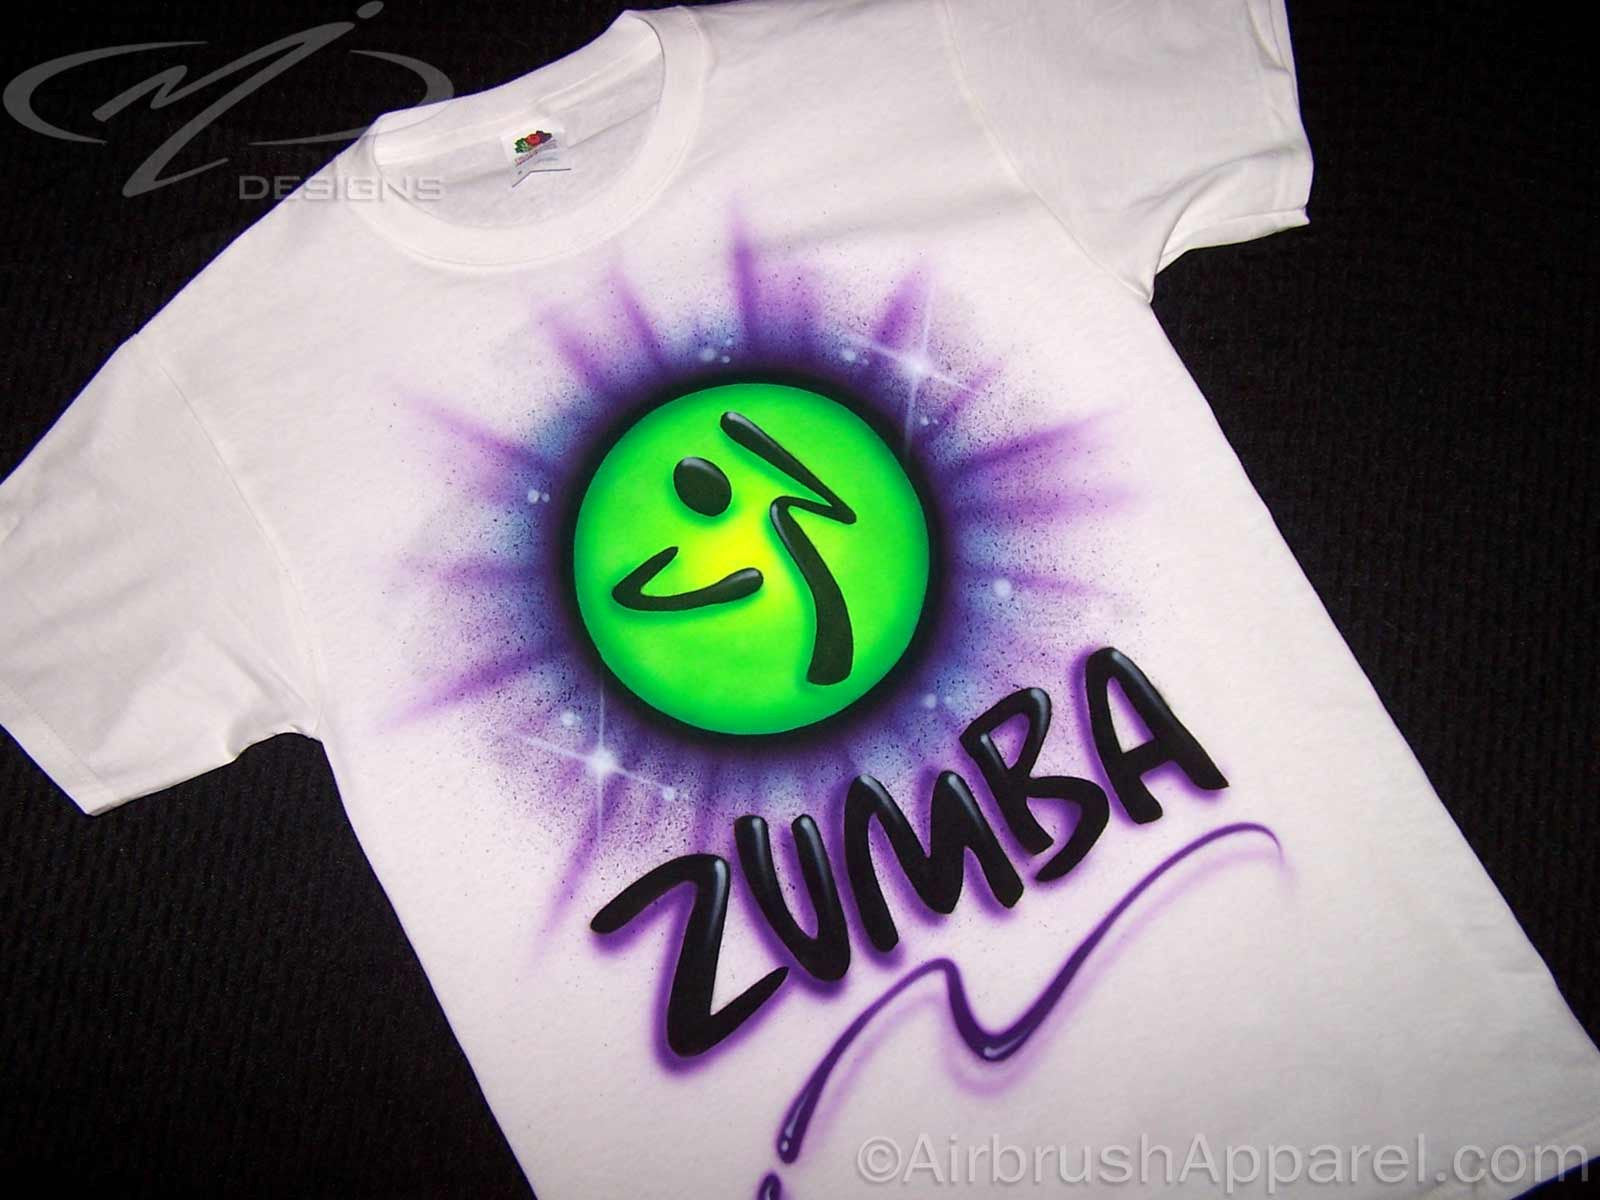 3XL Airbrushed Personalized T-Shirt Cheerleader Cheer Sizes 2T